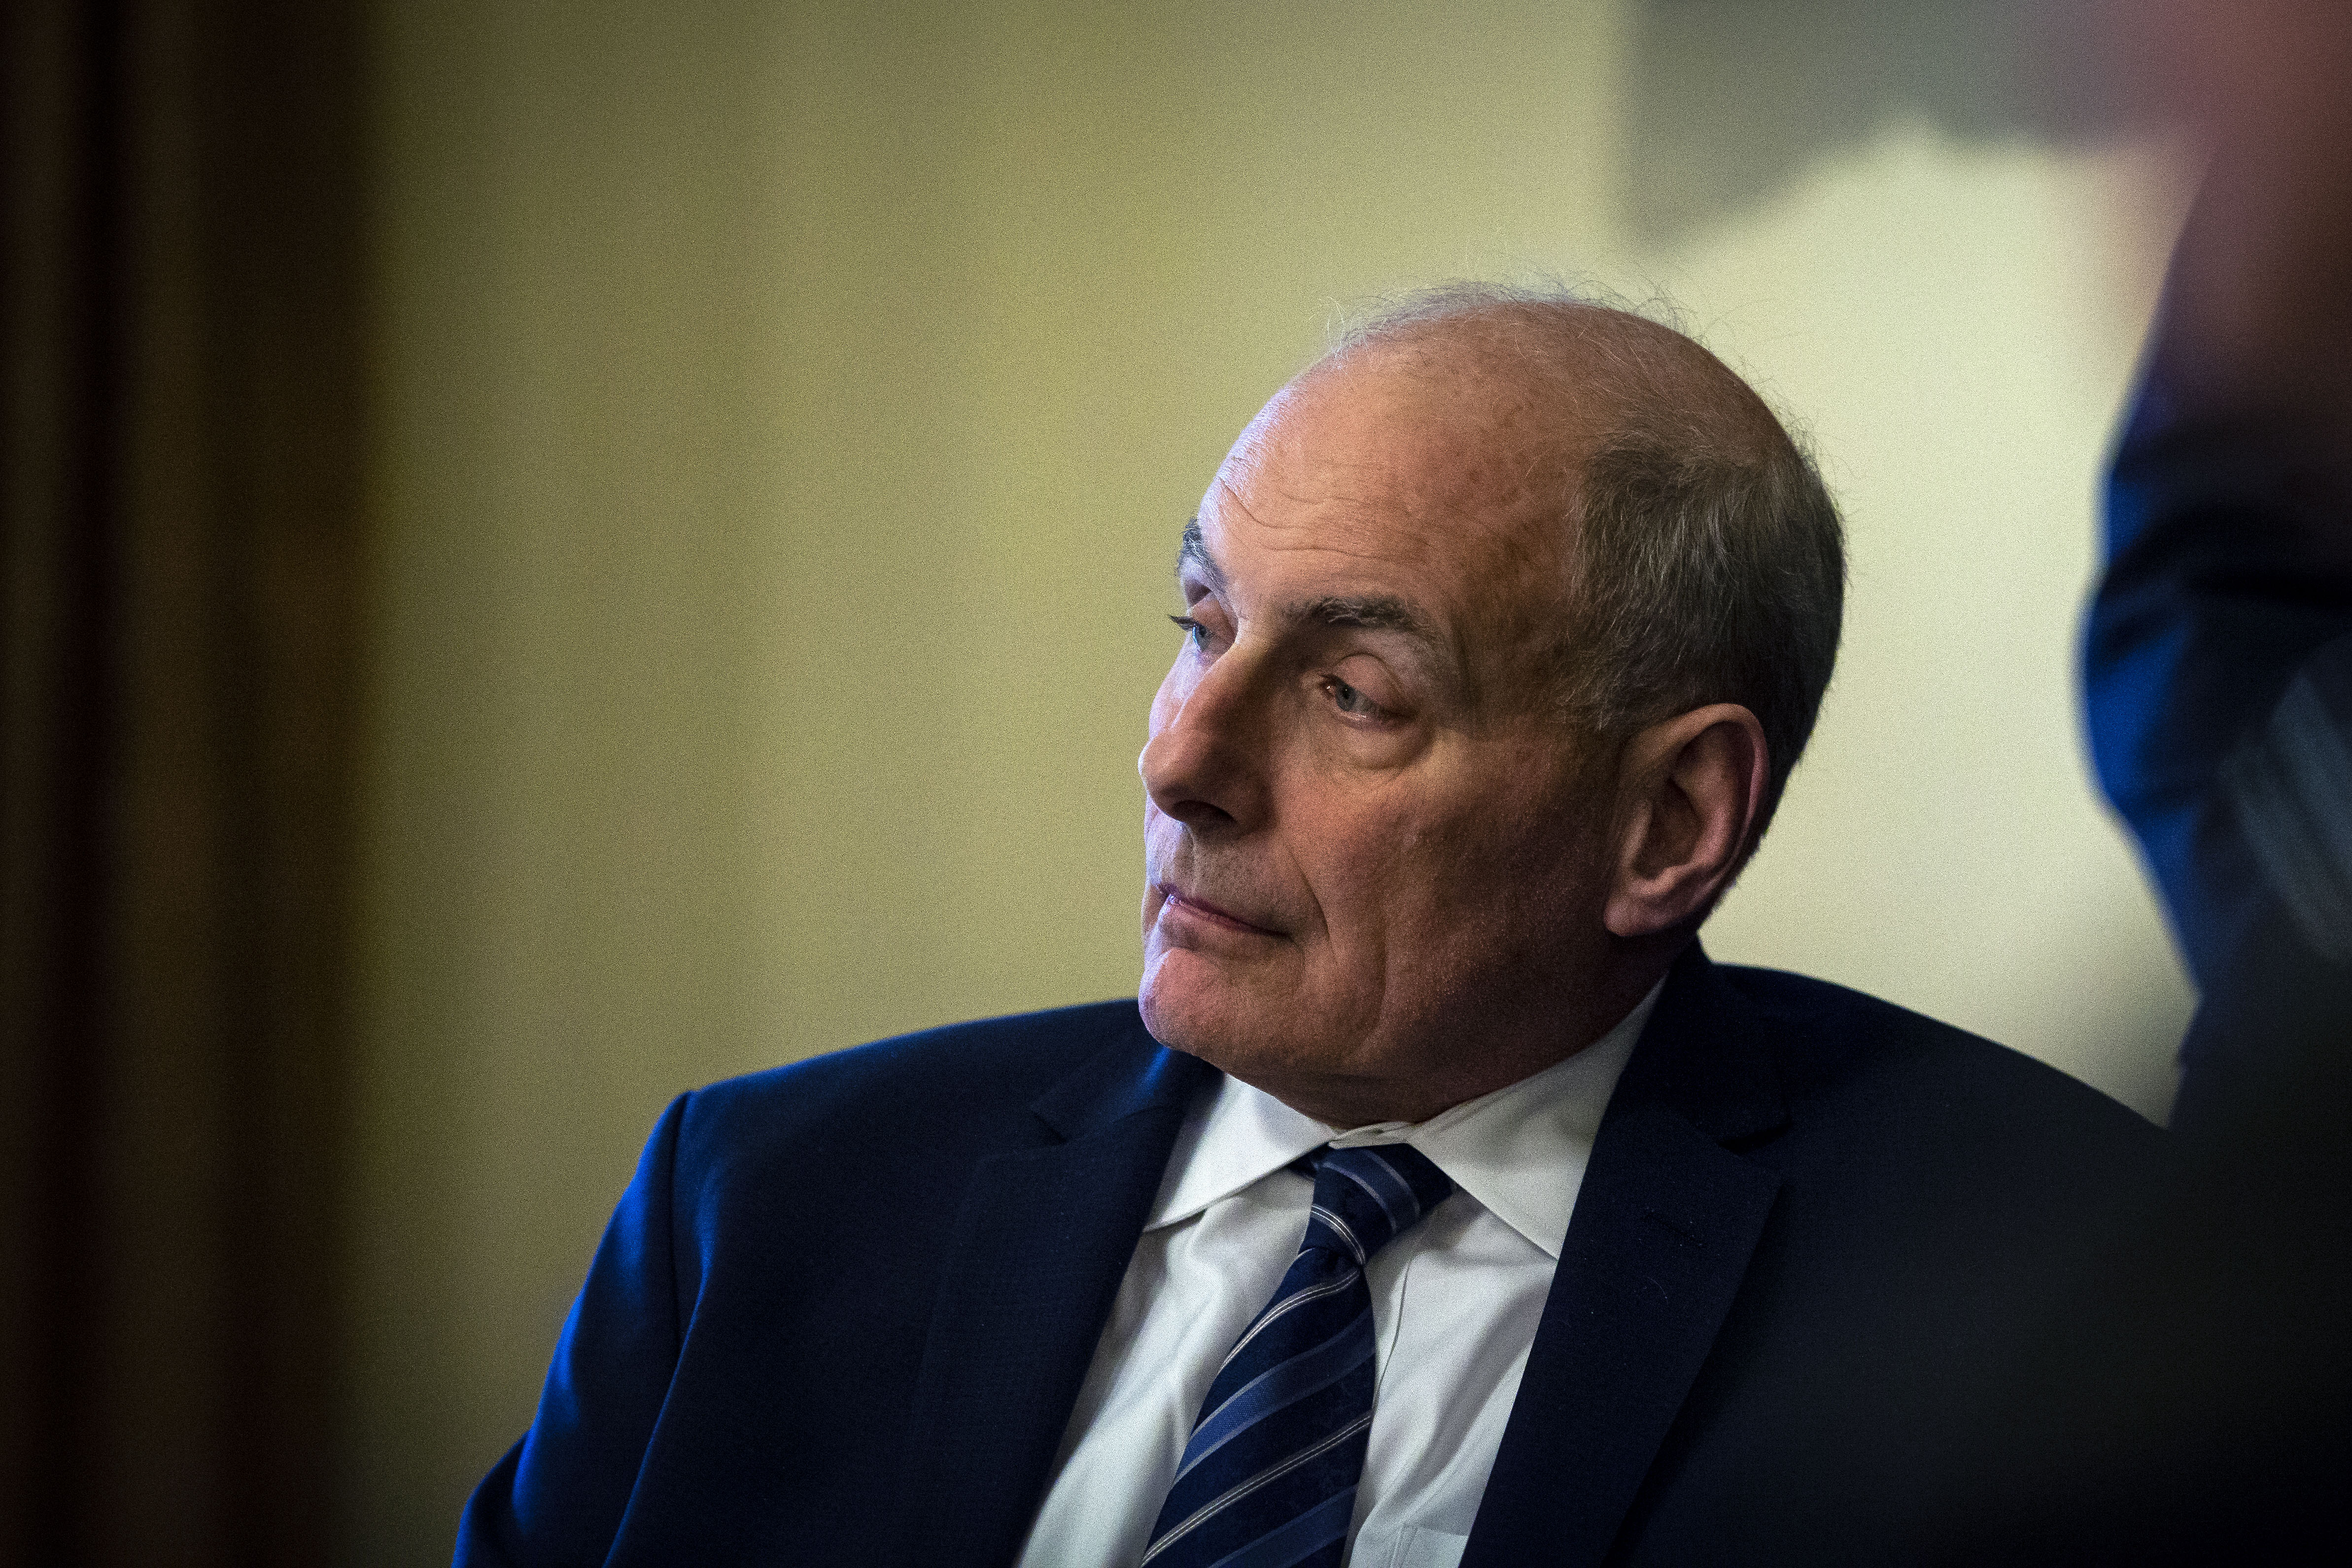 John Kelly, White House chief of staff, listens as U.S. President Donald Trump, not pictured, speaks during a meeting with senior military leadership in the Cabinet Room of the White House in Washington, D.C., U.S., on Monday, April 9, 2018.